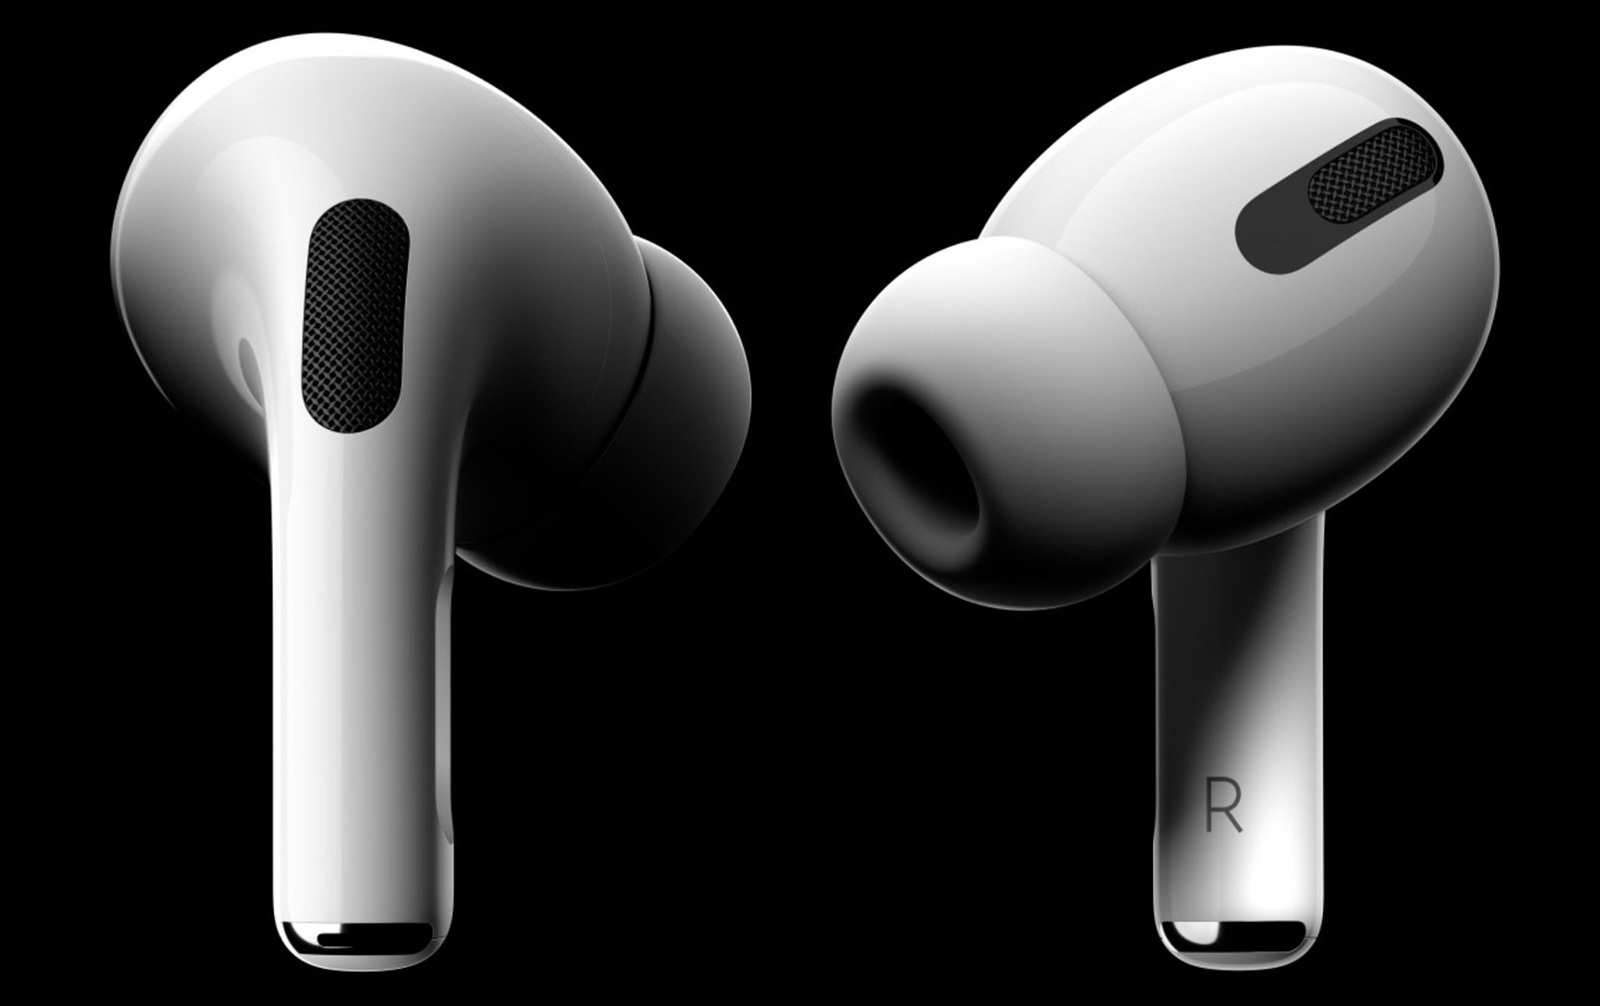 $169 AirPods Pro are almost sold out at Amazon, and AirPods 2 got an extra discount today